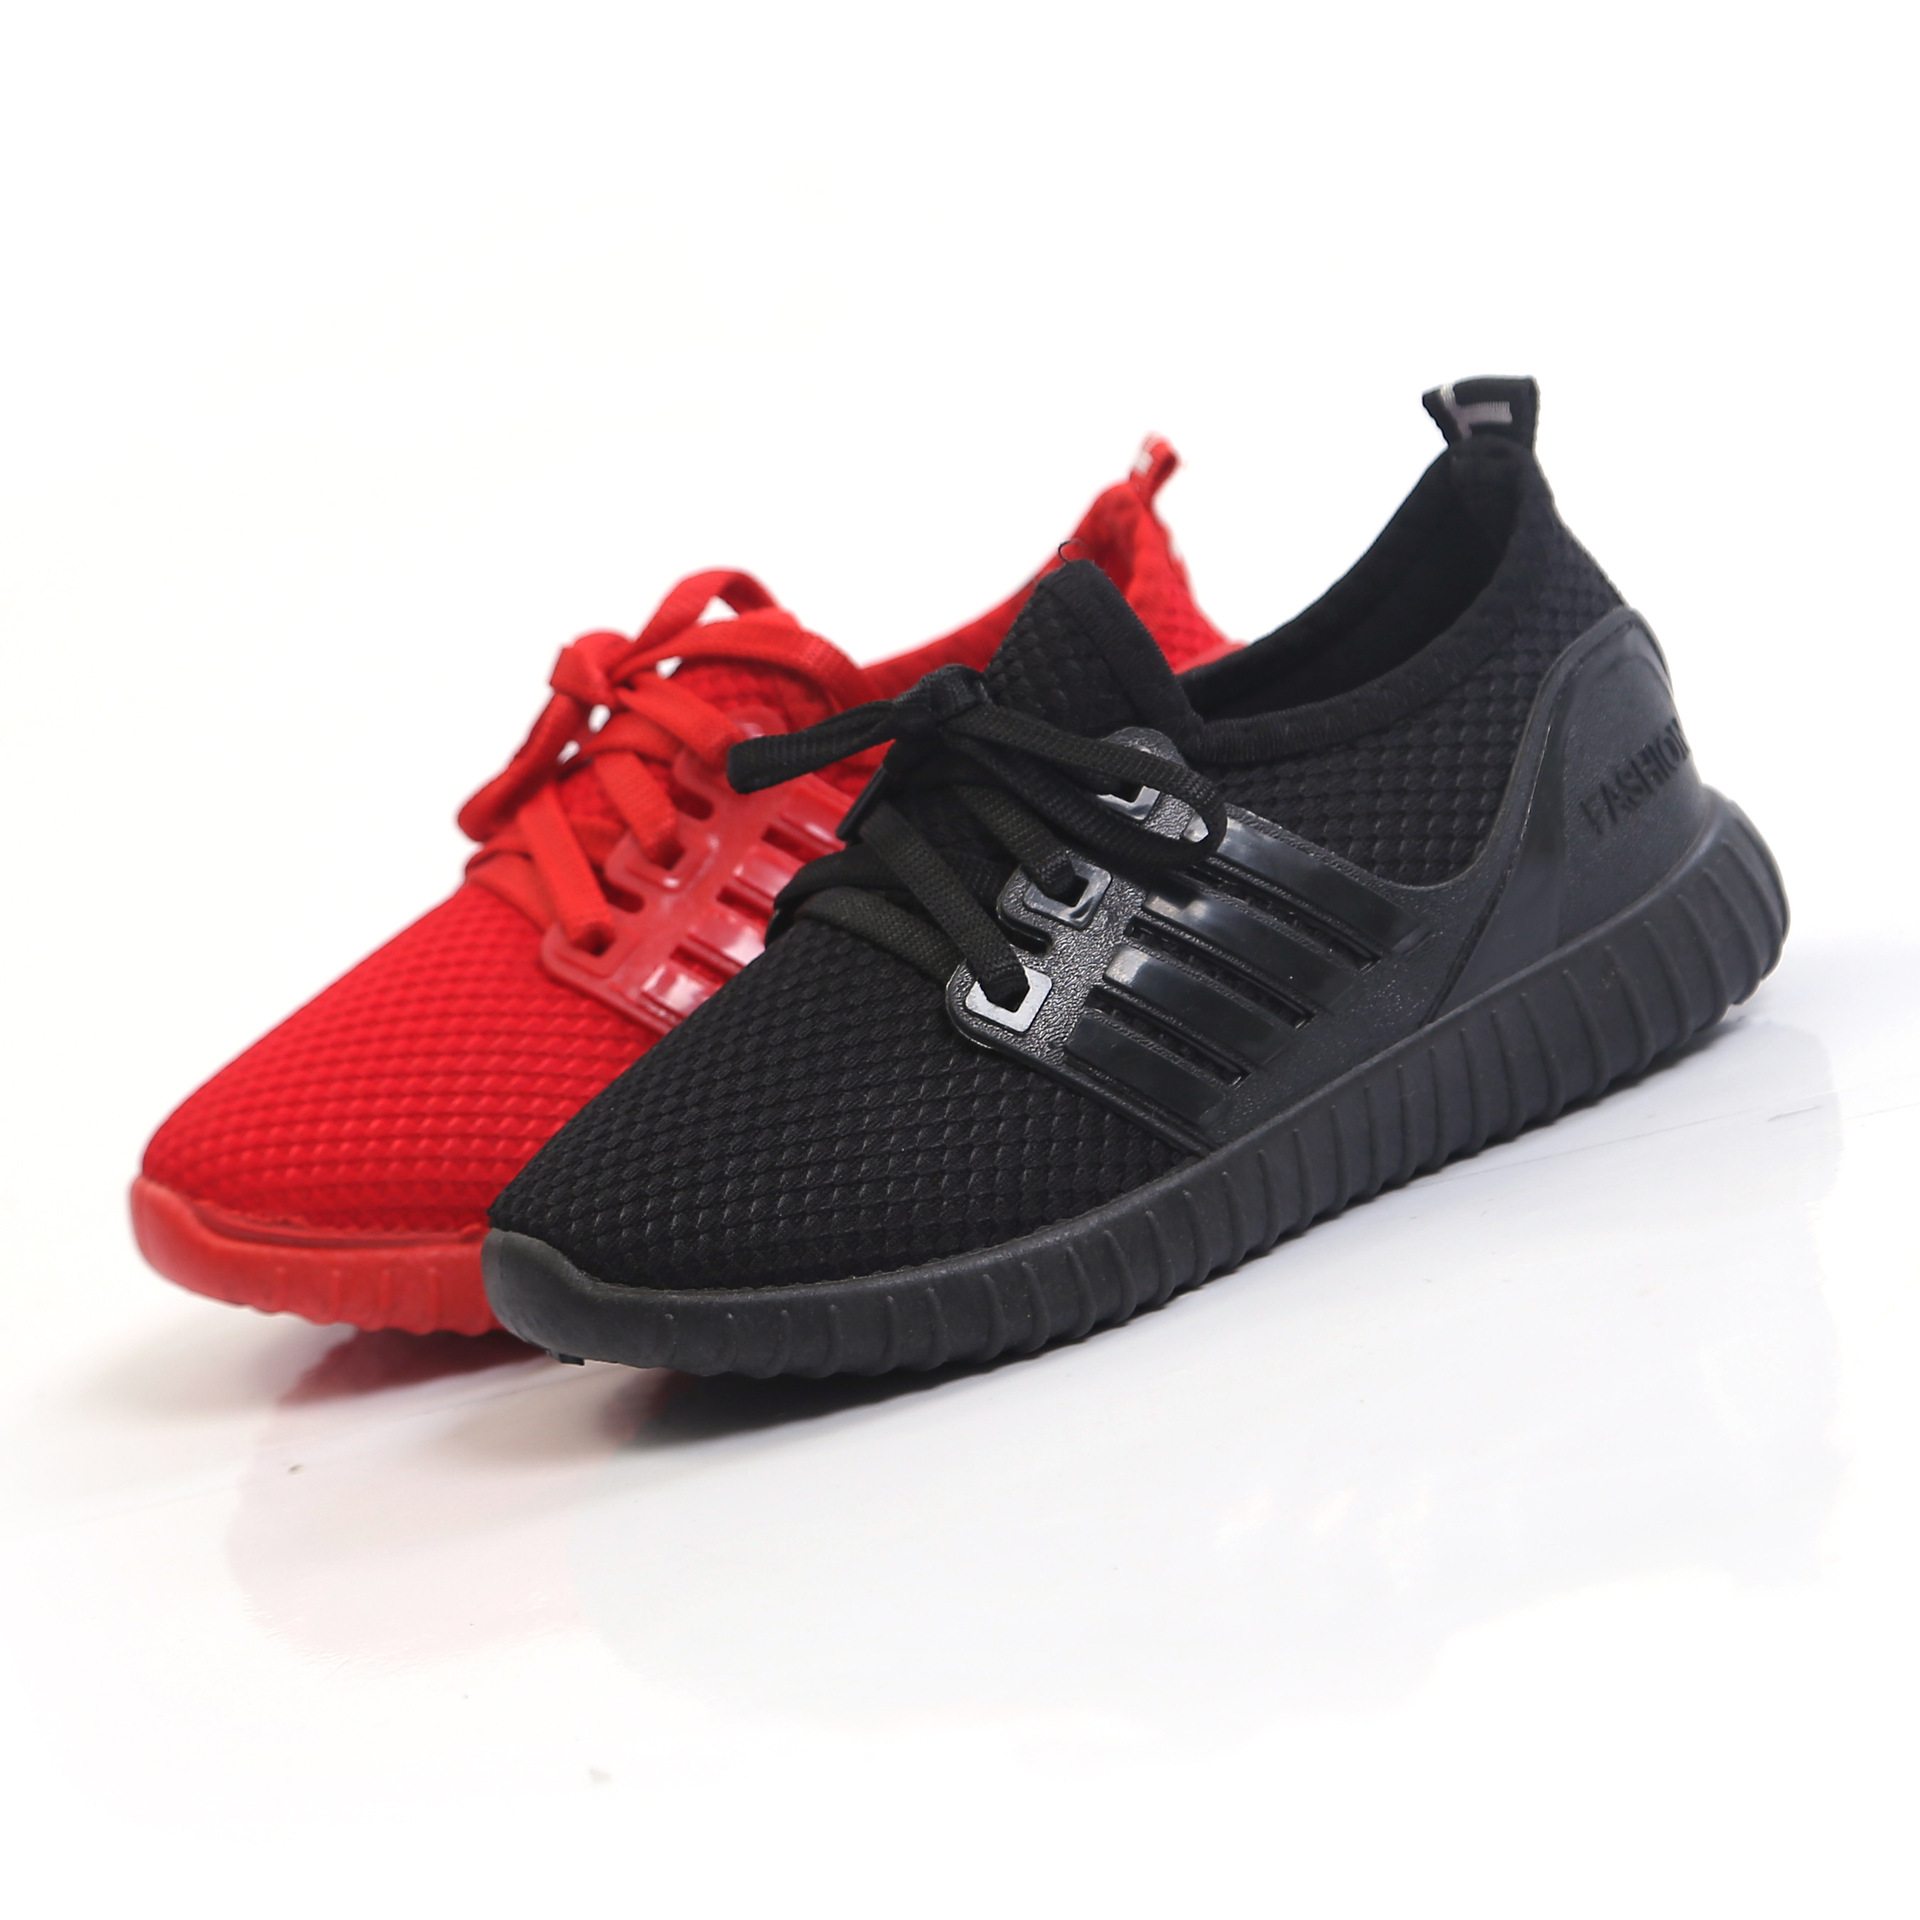 low priced 91a55 5d1f9 US $18.04 5% OFF|Kids Shoes Running Children Air Sta Sport Ultras Pure  Athletic Breathable NMD Outdoor Boost Girls Boys Child Smithe Max  Sneakers-in ...